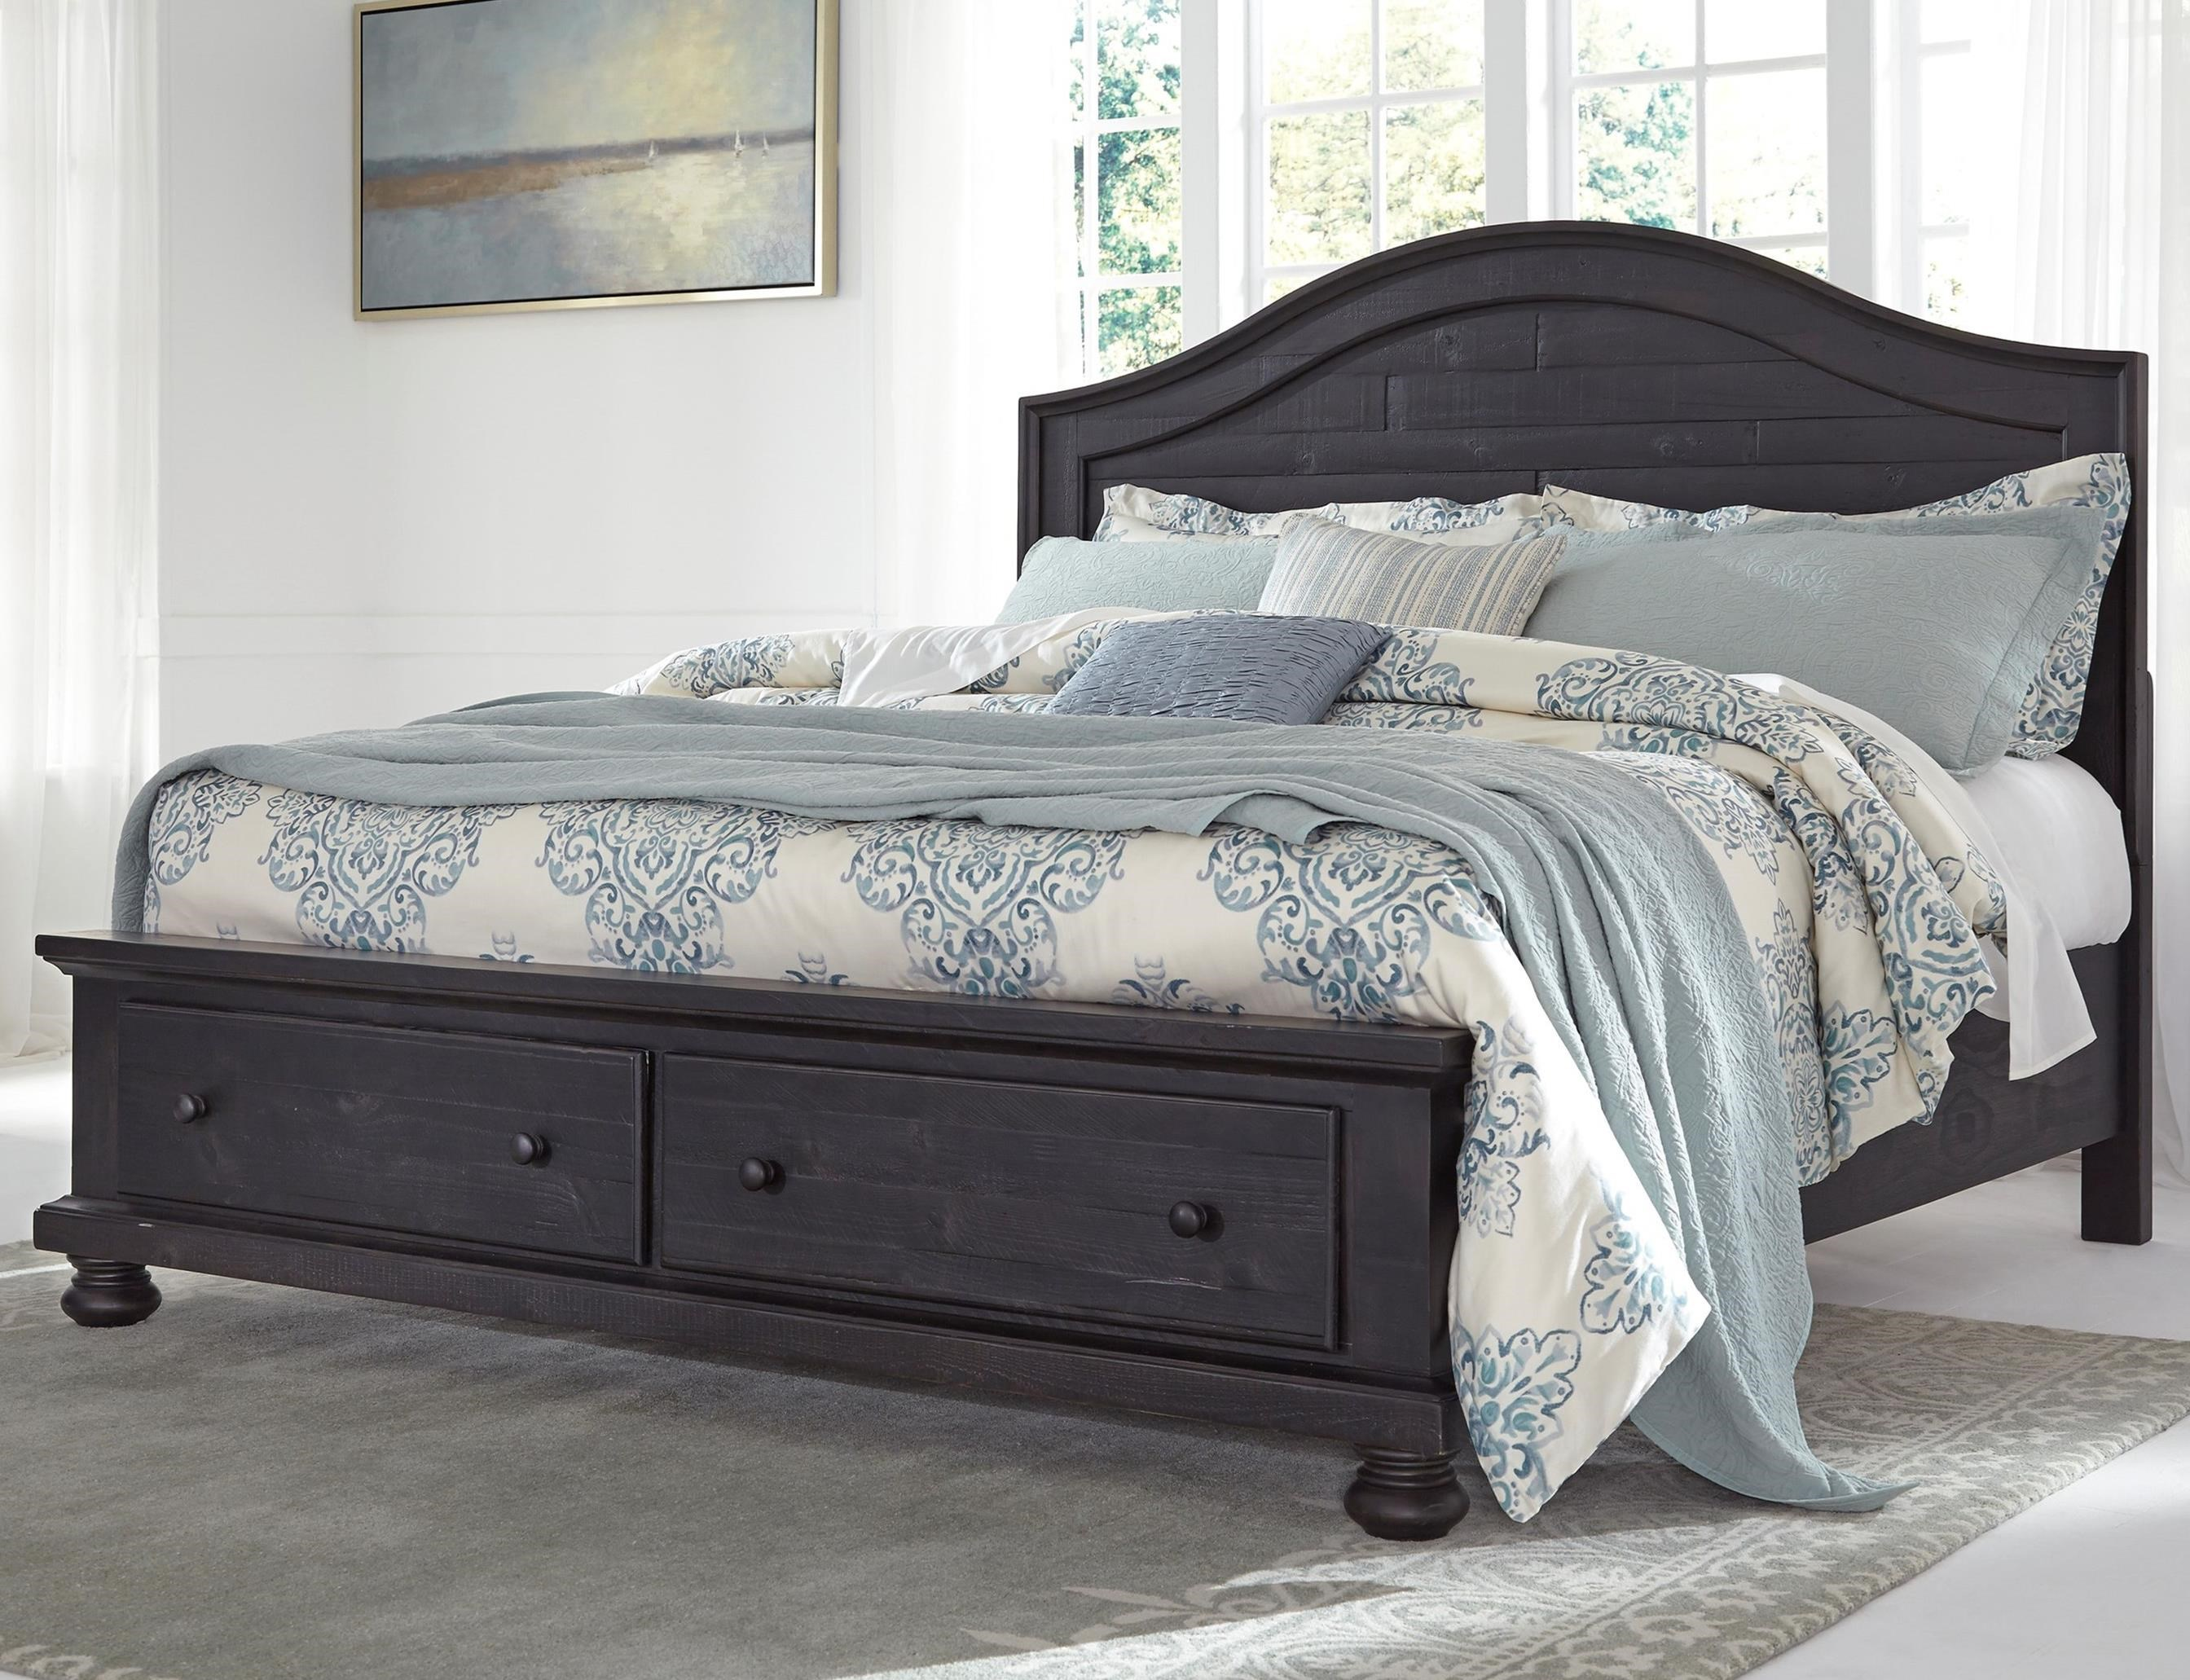 Signature Design by Ashley Sharlowe King Storage Bed - Item Number: B635-58+56S+97S